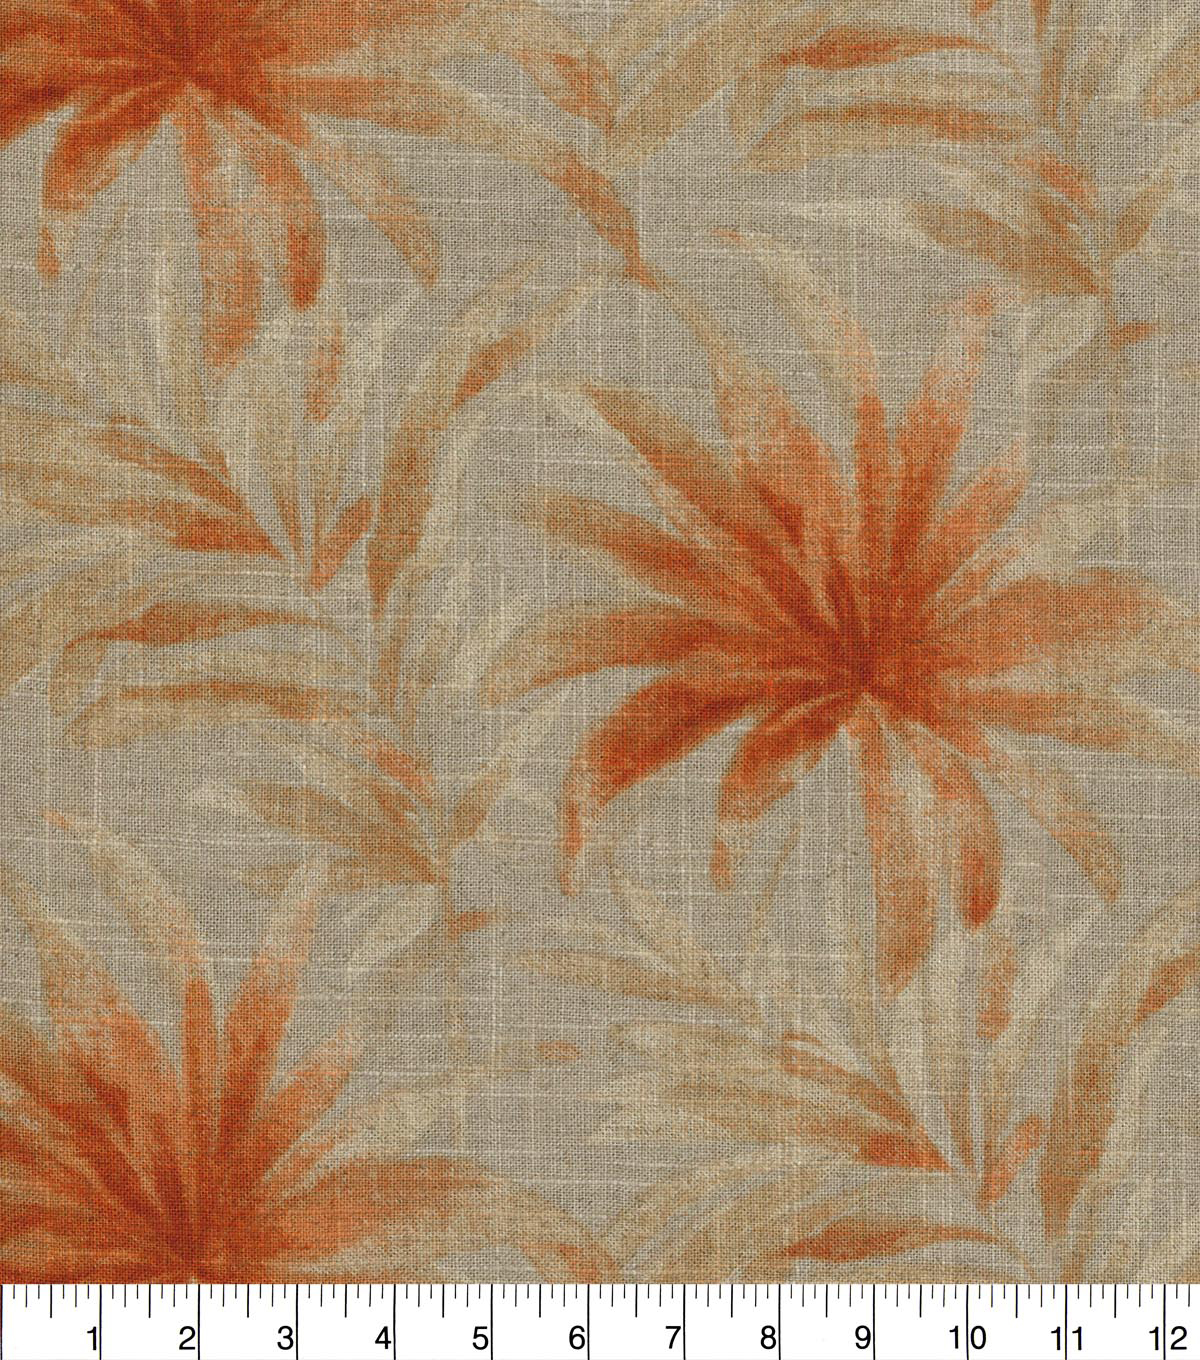 Home Decor 8\u0022x8\u0022 Fabric Swatch-Tommy Bahama Balmy Days Nutmeg